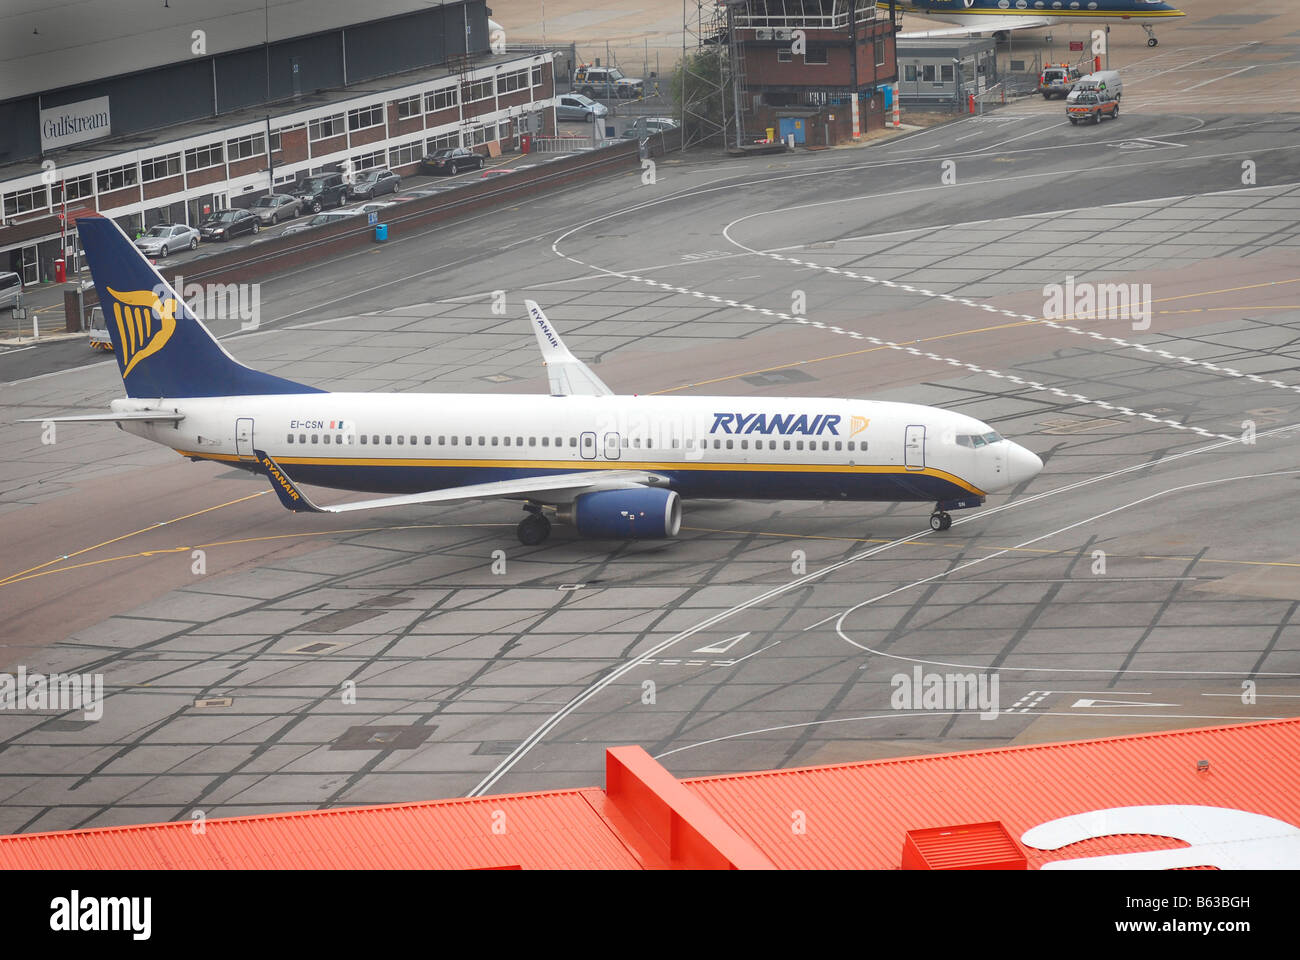 A Ryanair plane taxi's to it's stand at Luton Airport. - Stock Image